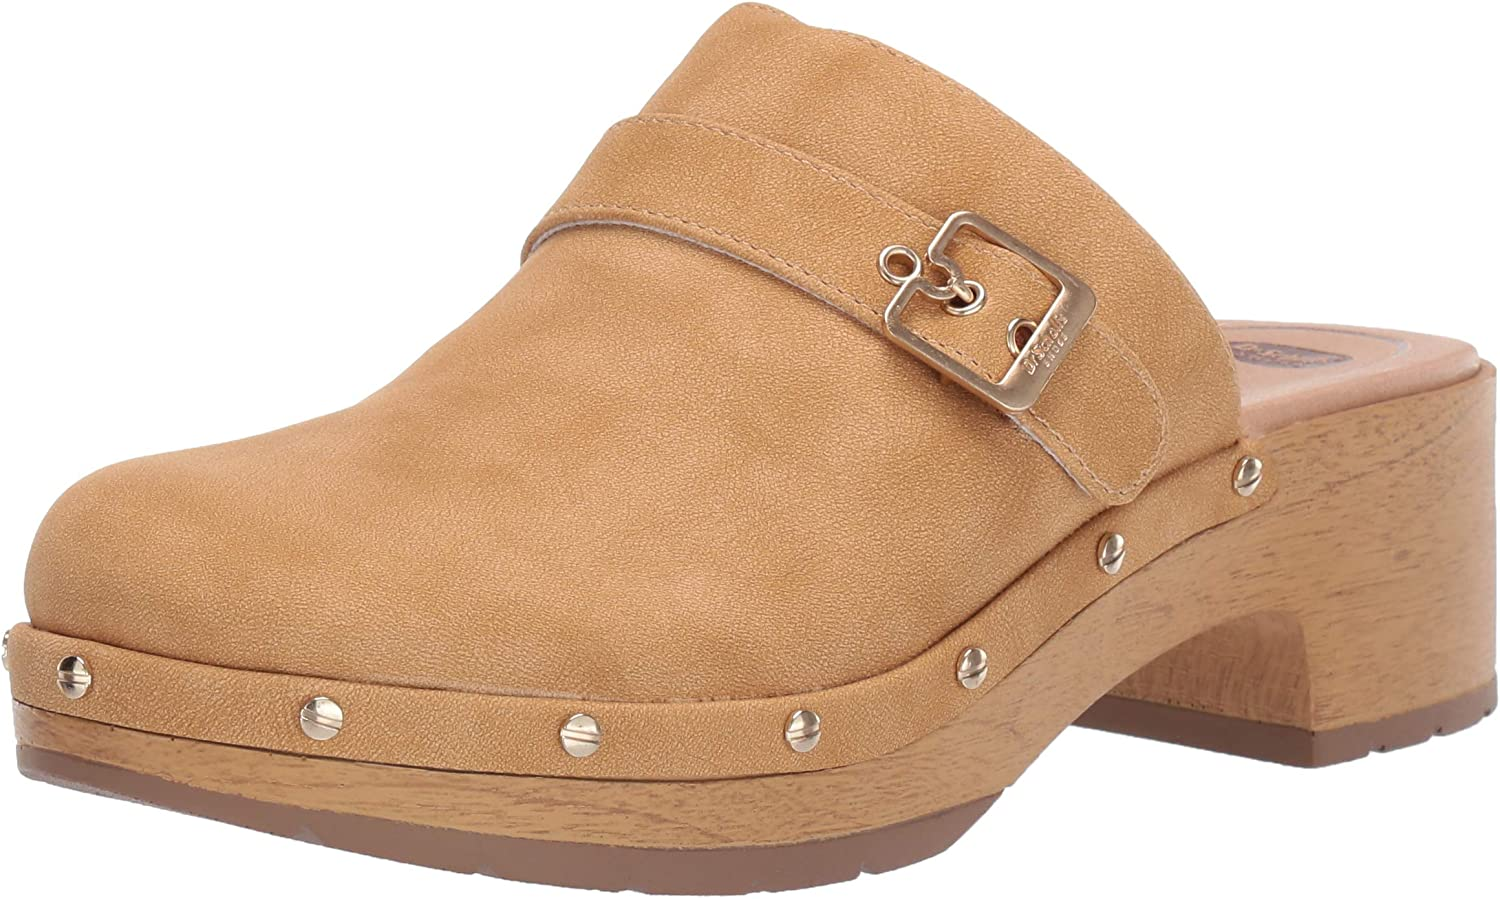 Dr. Cheap super special price Discount is also underway Scholl's Shoes Clog Throwback Women's